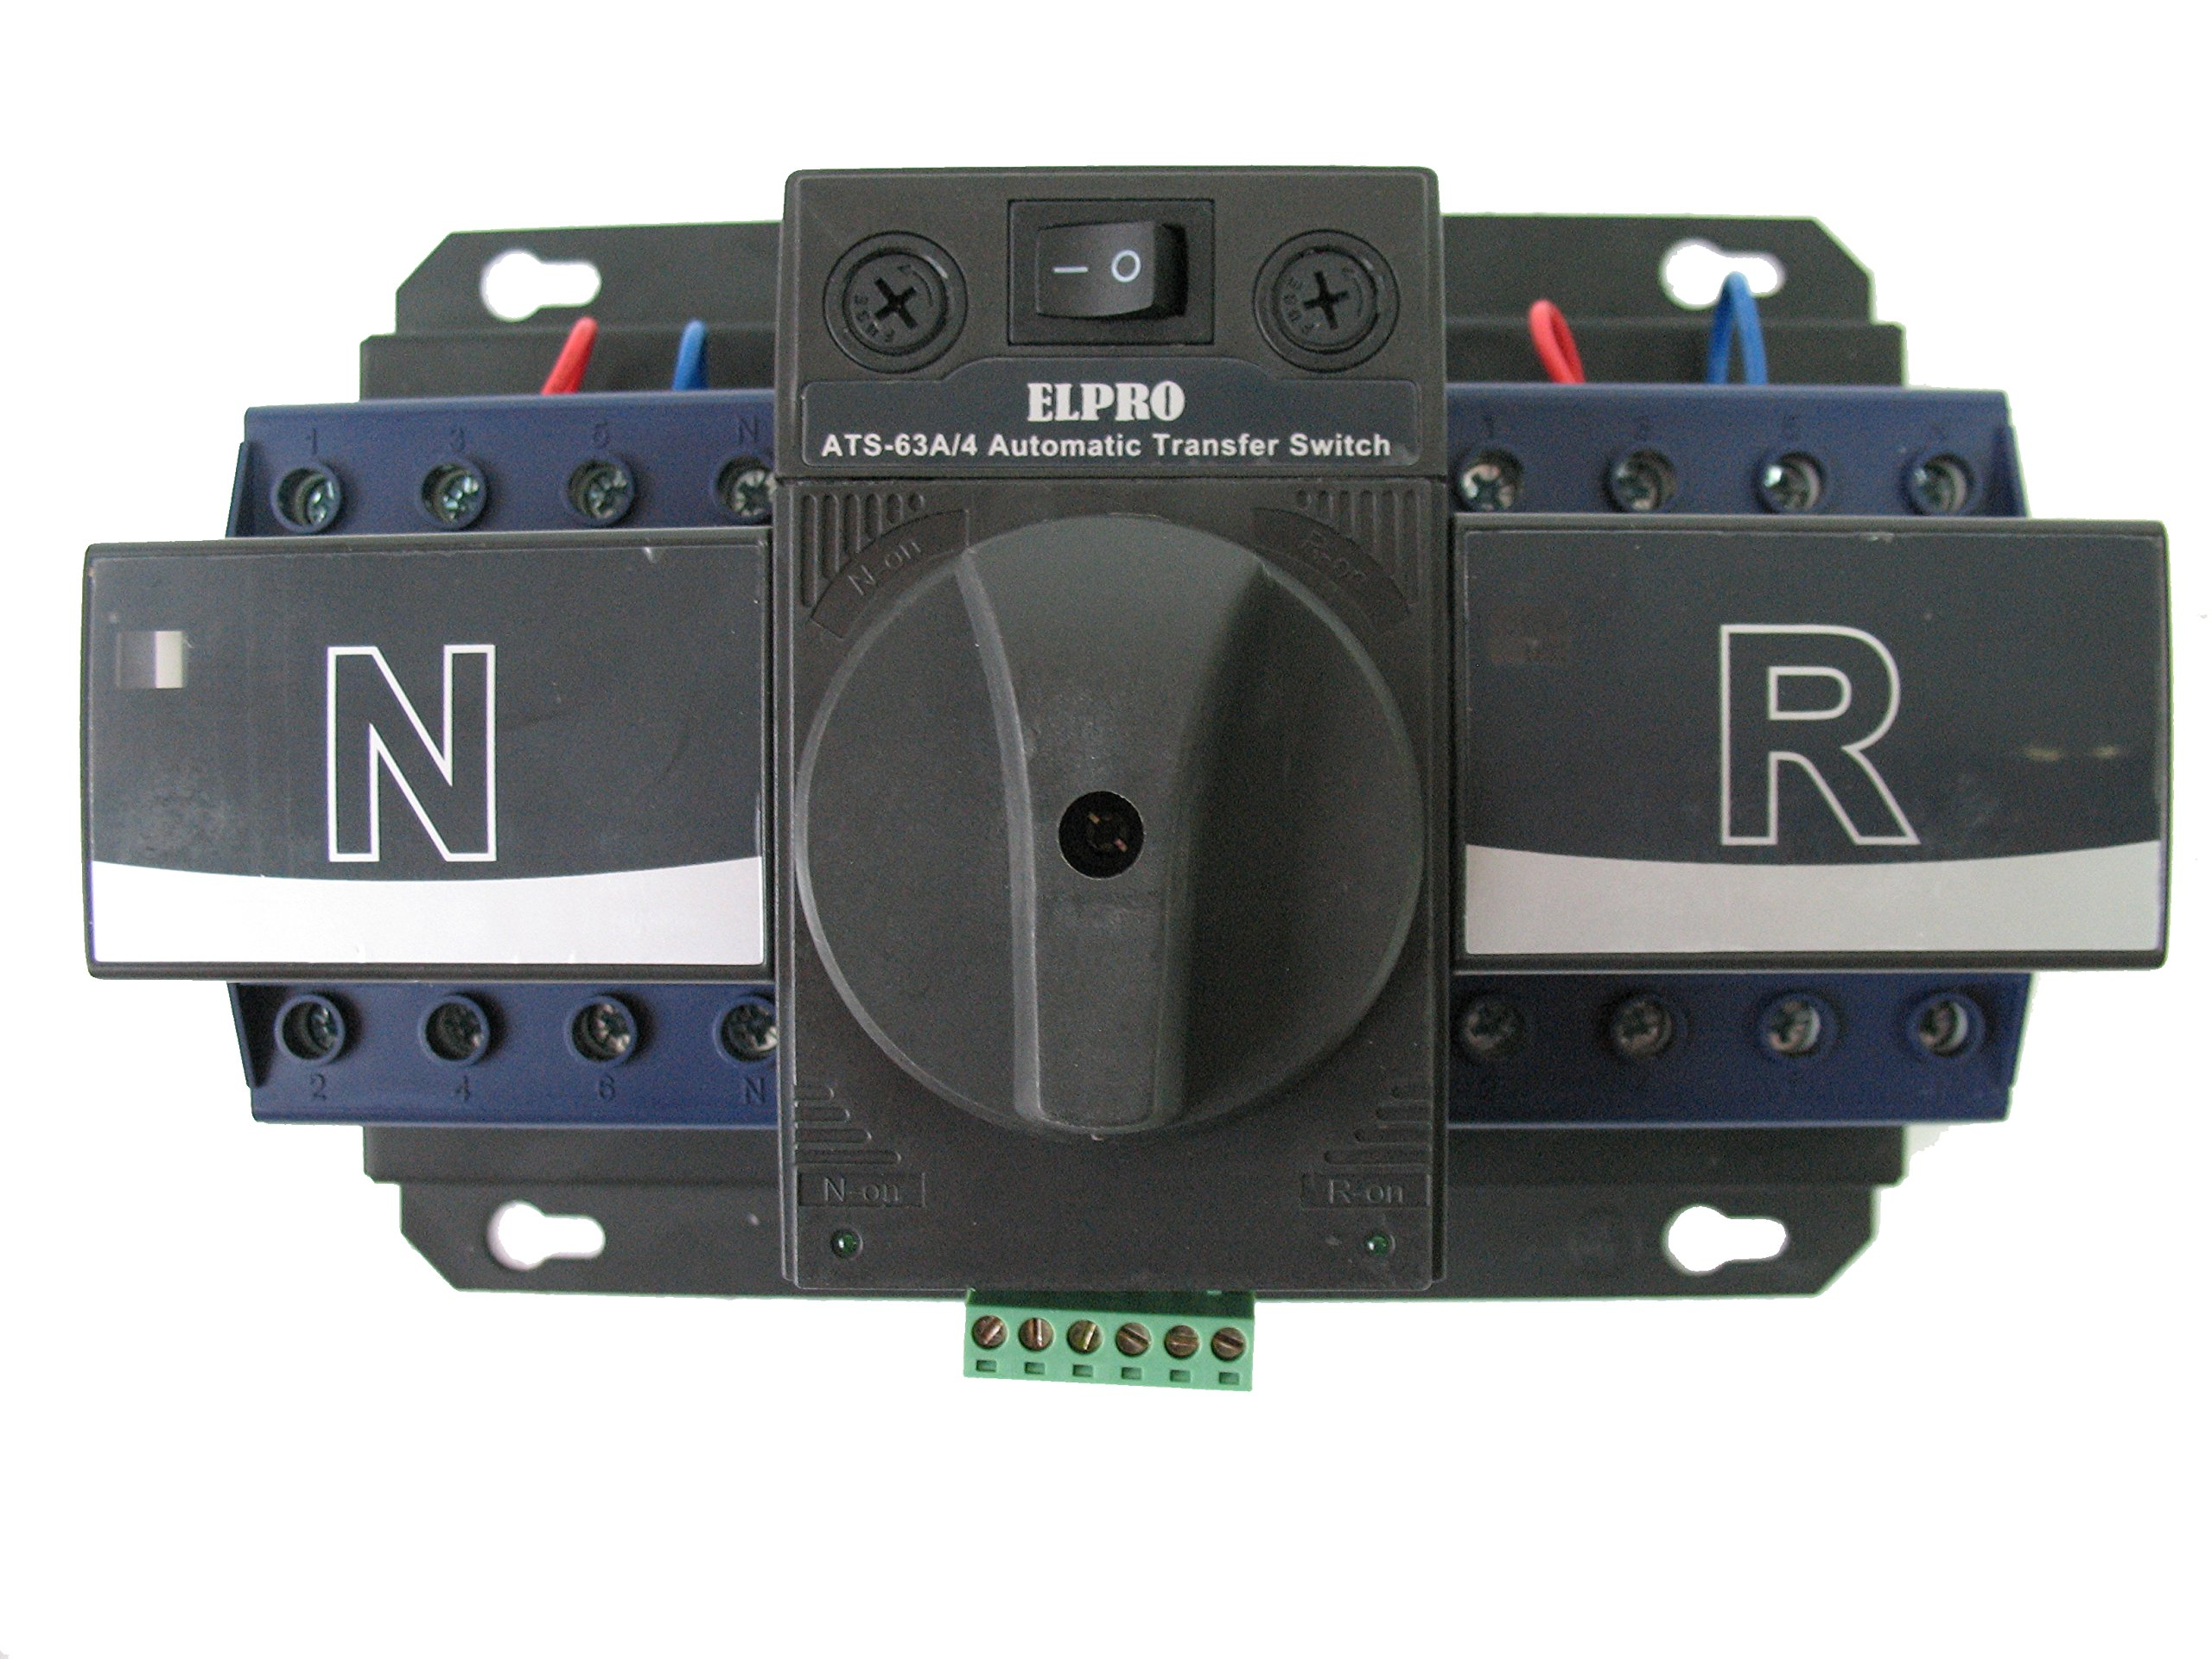 ELPRO ATS-63A, 120/208V 50-60Hz Automatic Transfer Changeover Switch, 2-3 phase, 4P by ELPRO (Image #1)